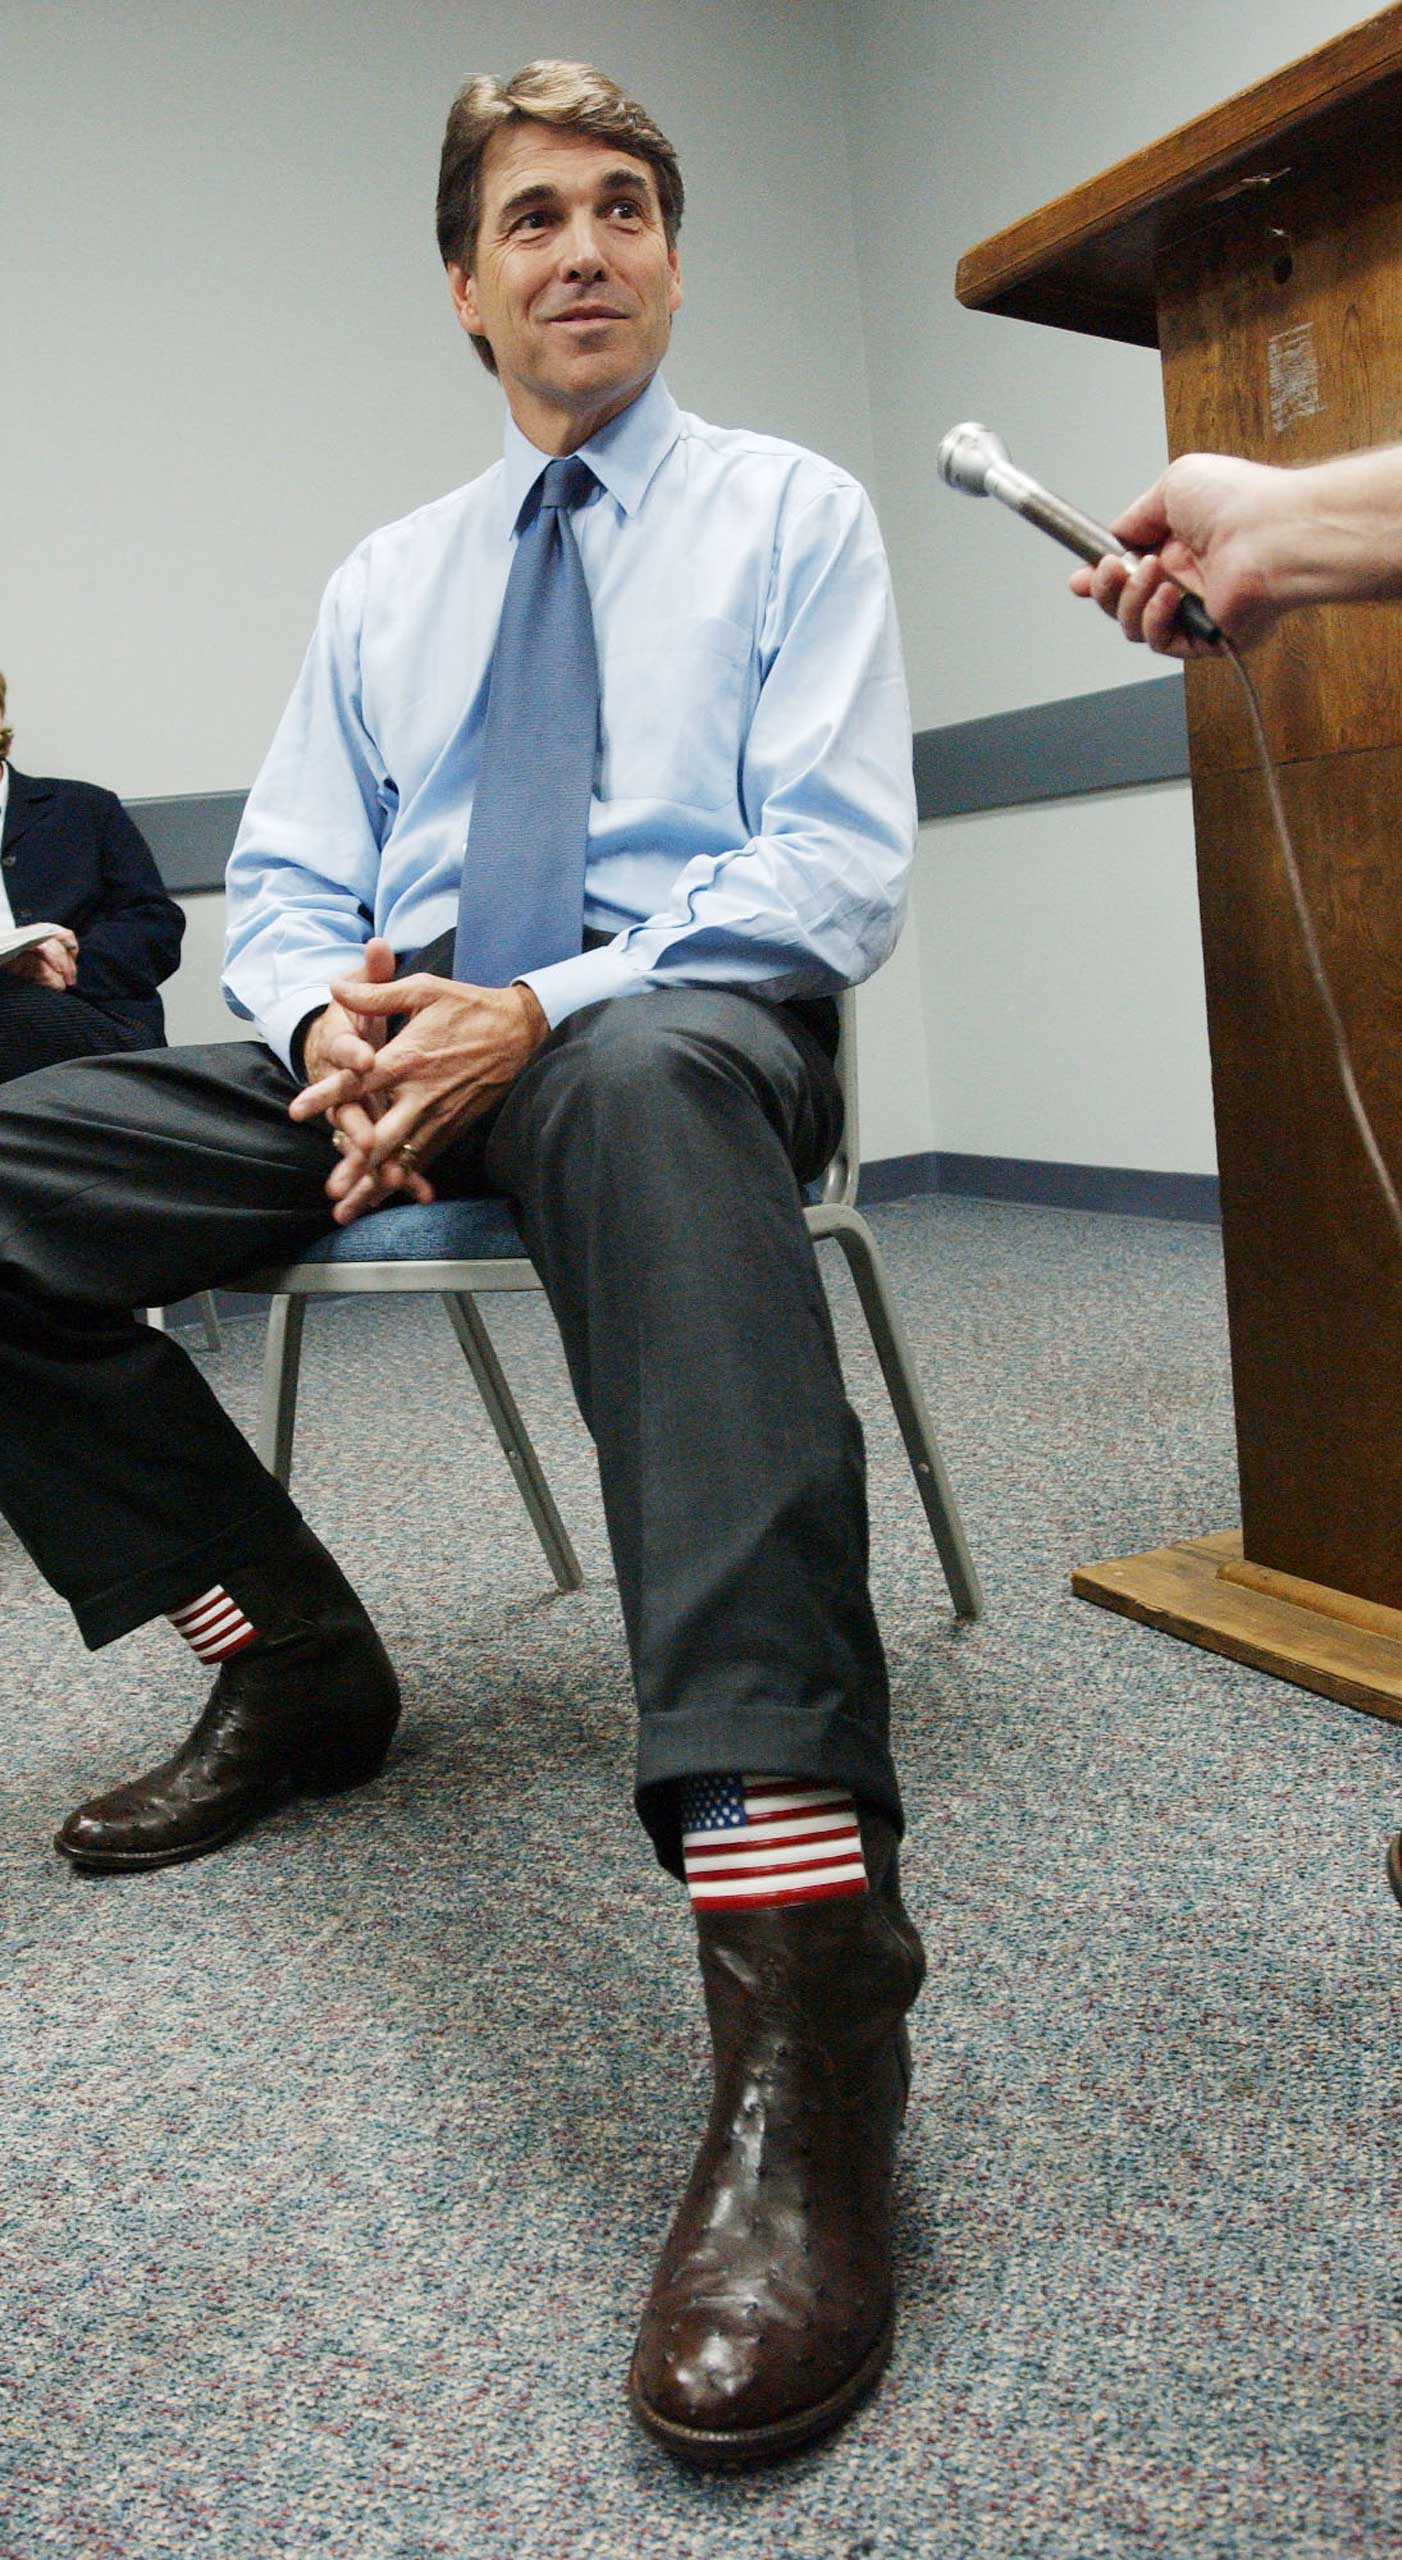 Like his predecessor, former Texas Gov. Rick Perry long favored cowboy boots, but he's no longer able to wear them.